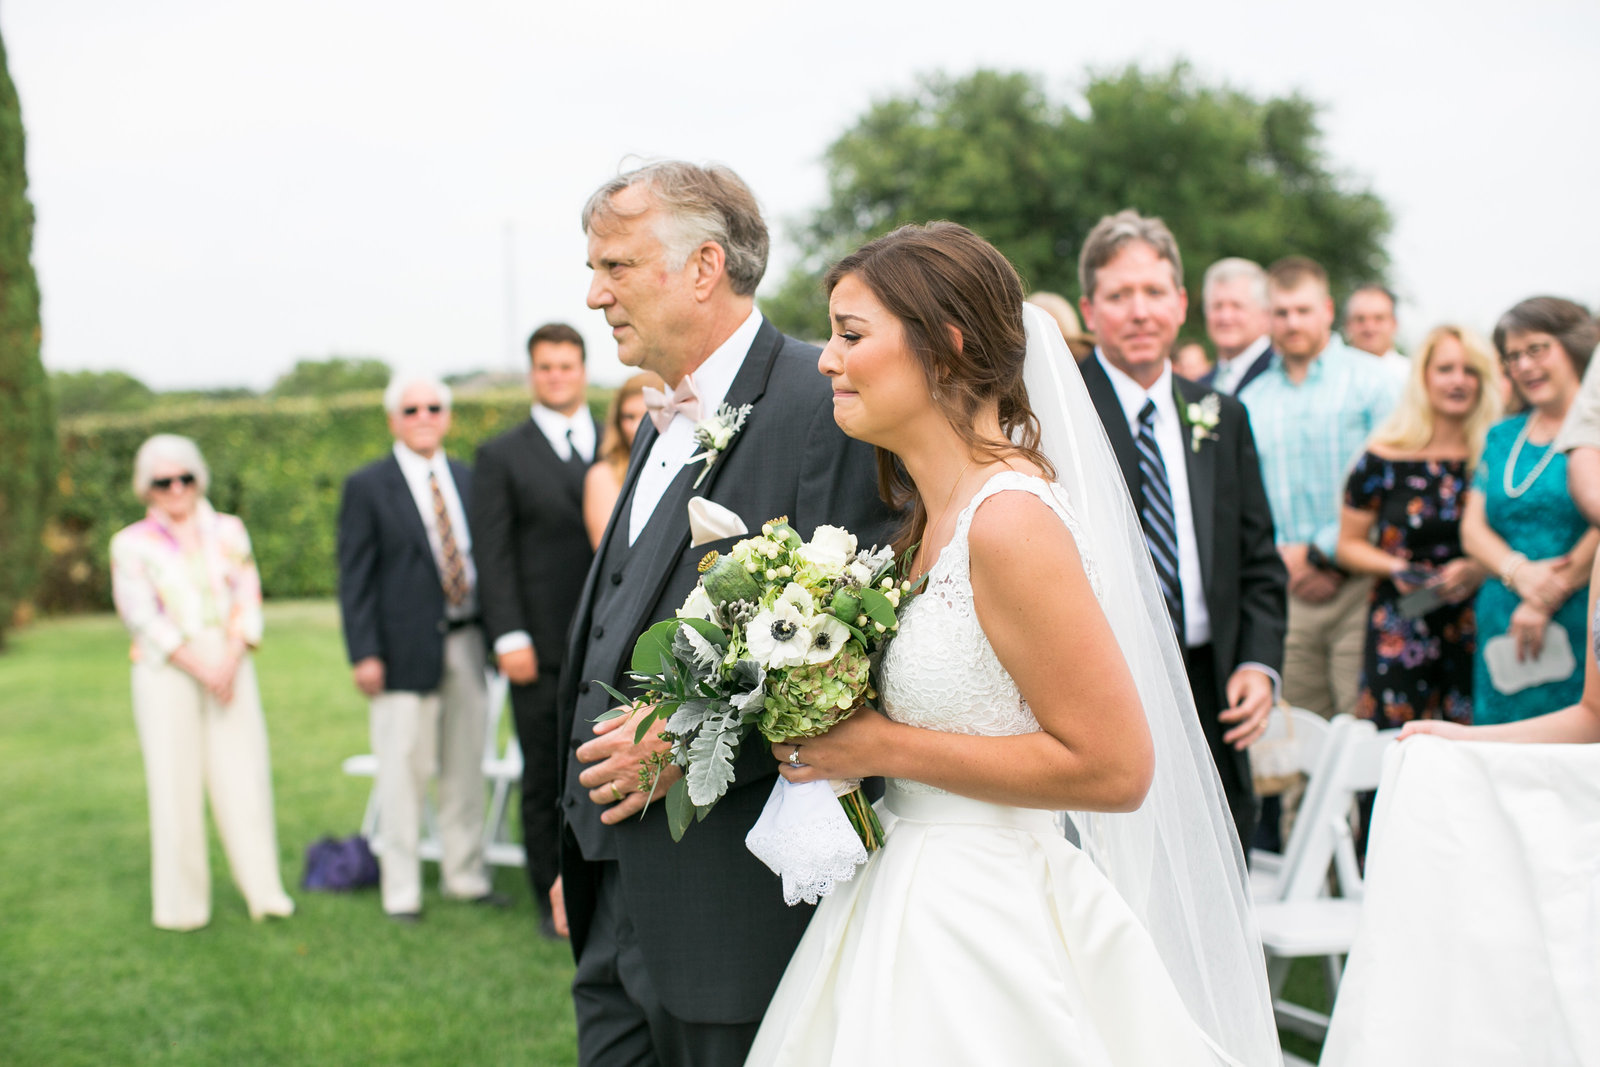 gardens-of-cranesbury-view-canyon-lake-texas-wedding-ceremony-photo-159